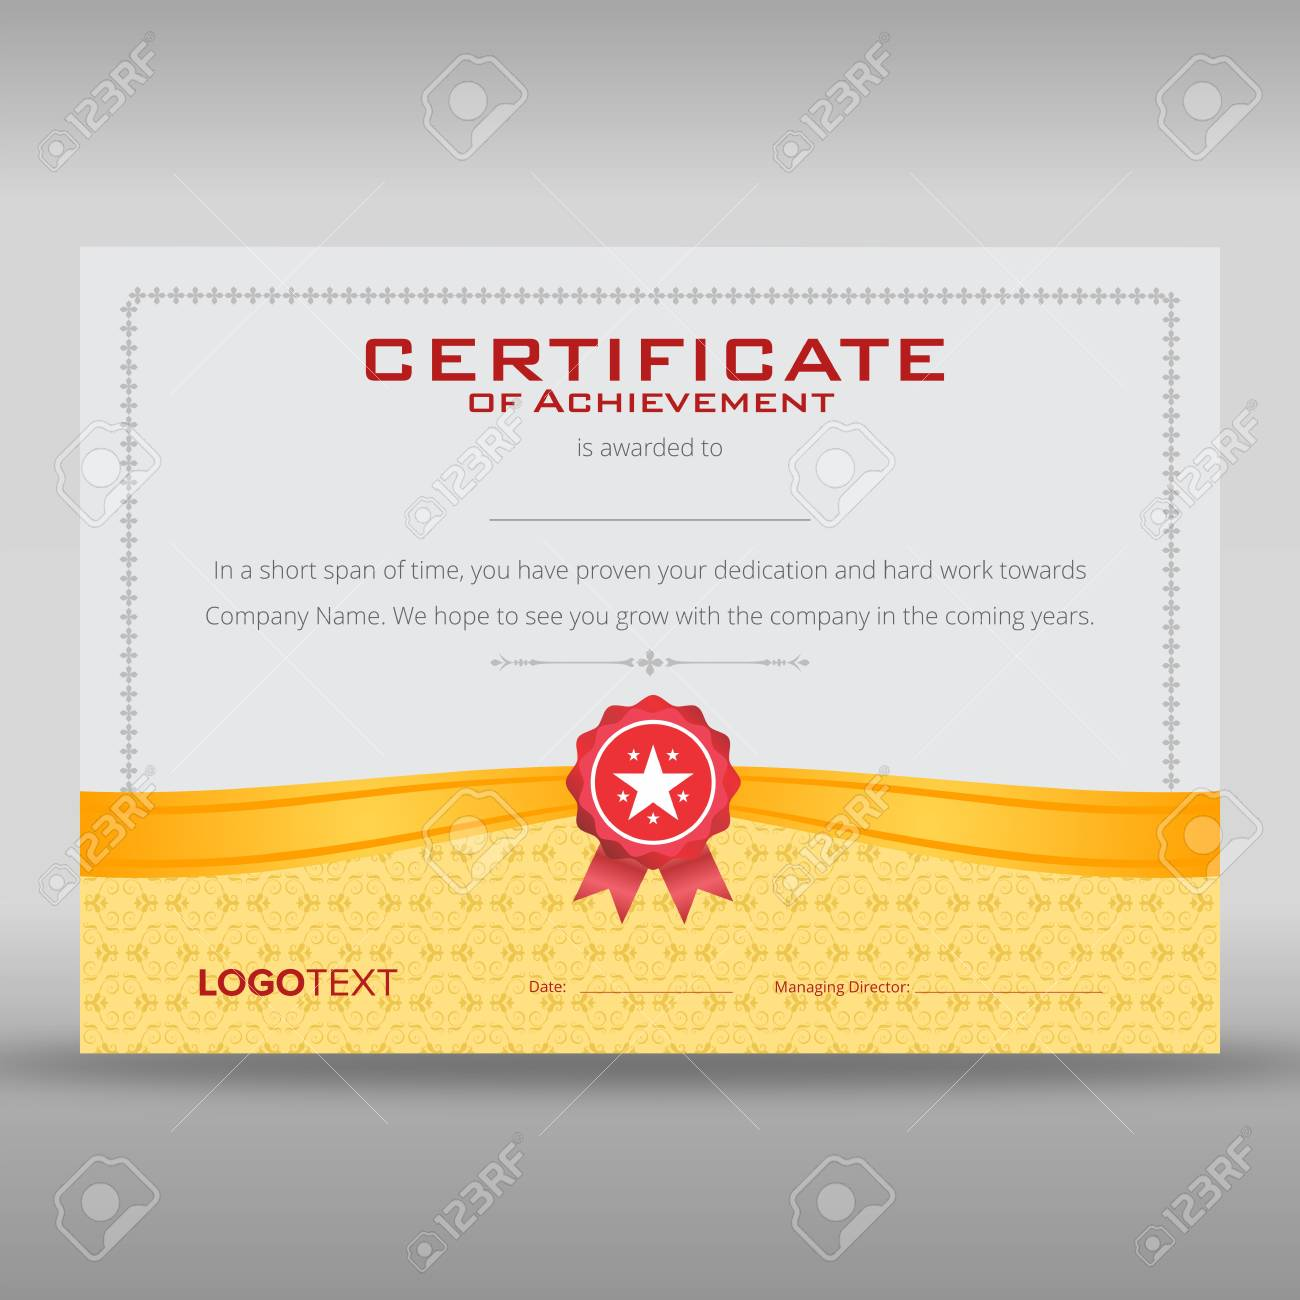 retro print ready certificate of achievement with gold ribbon and soft grey framed background stock vector